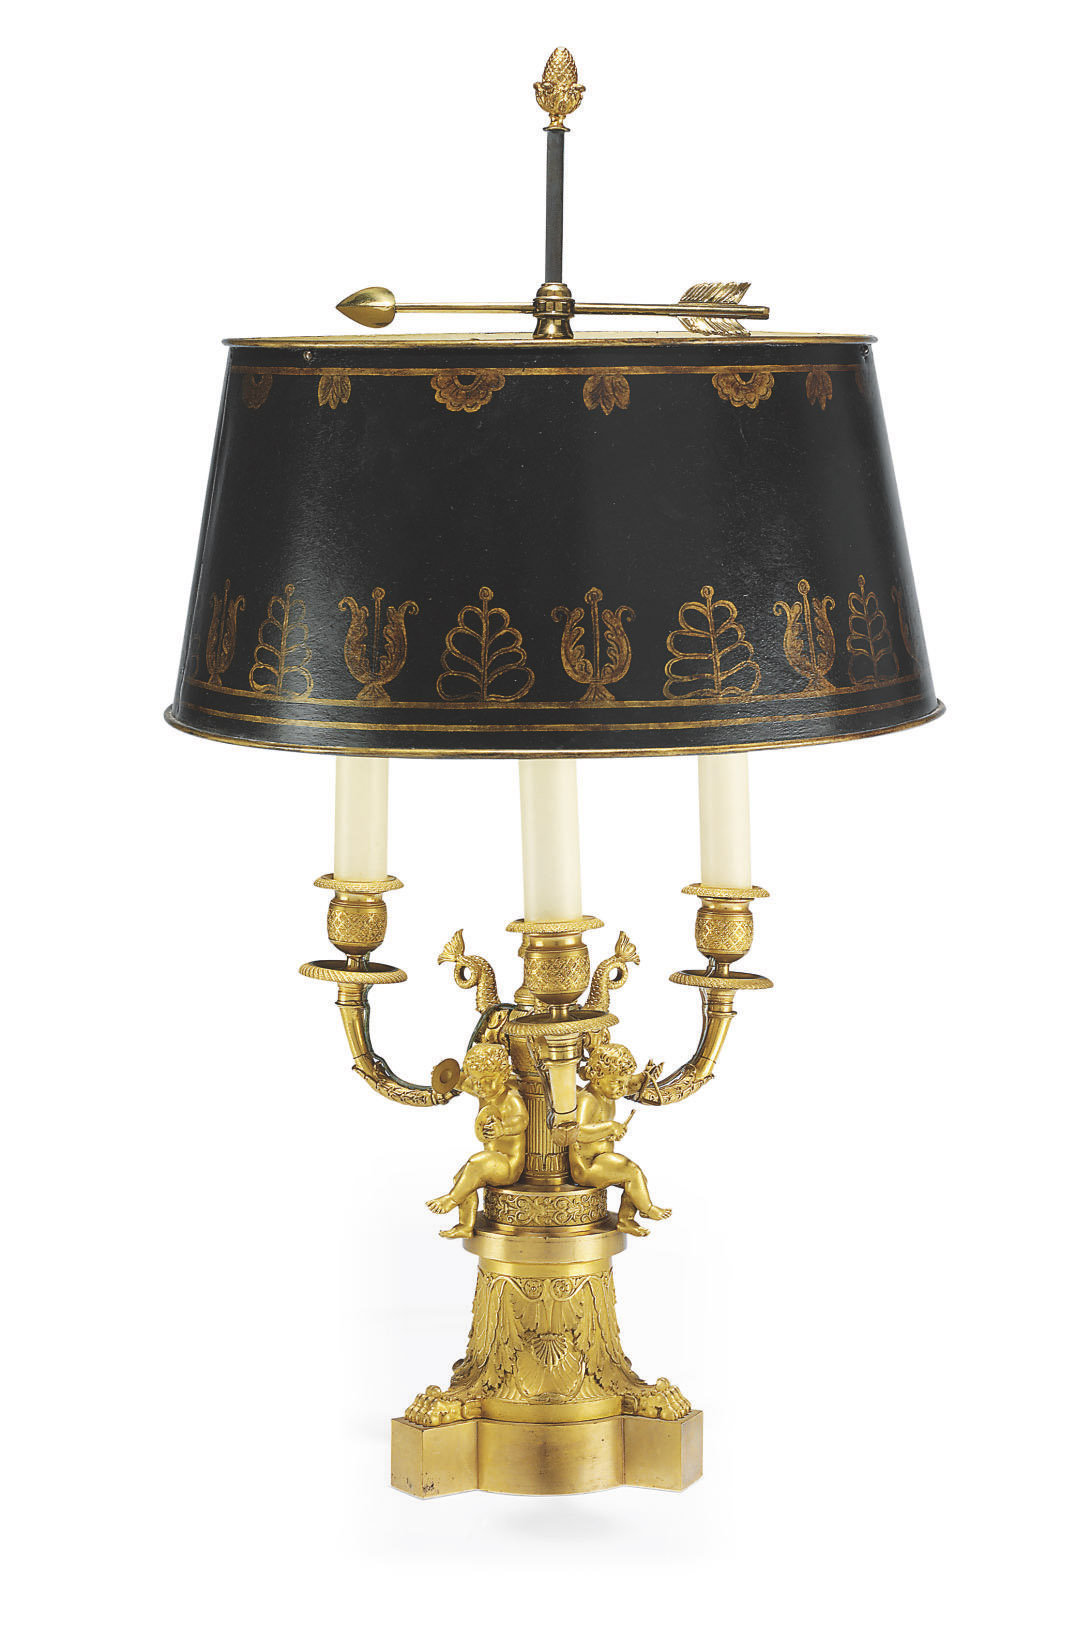 An Empire Ormolu And Tole Lampe Bouillotte By Pierre Philippe